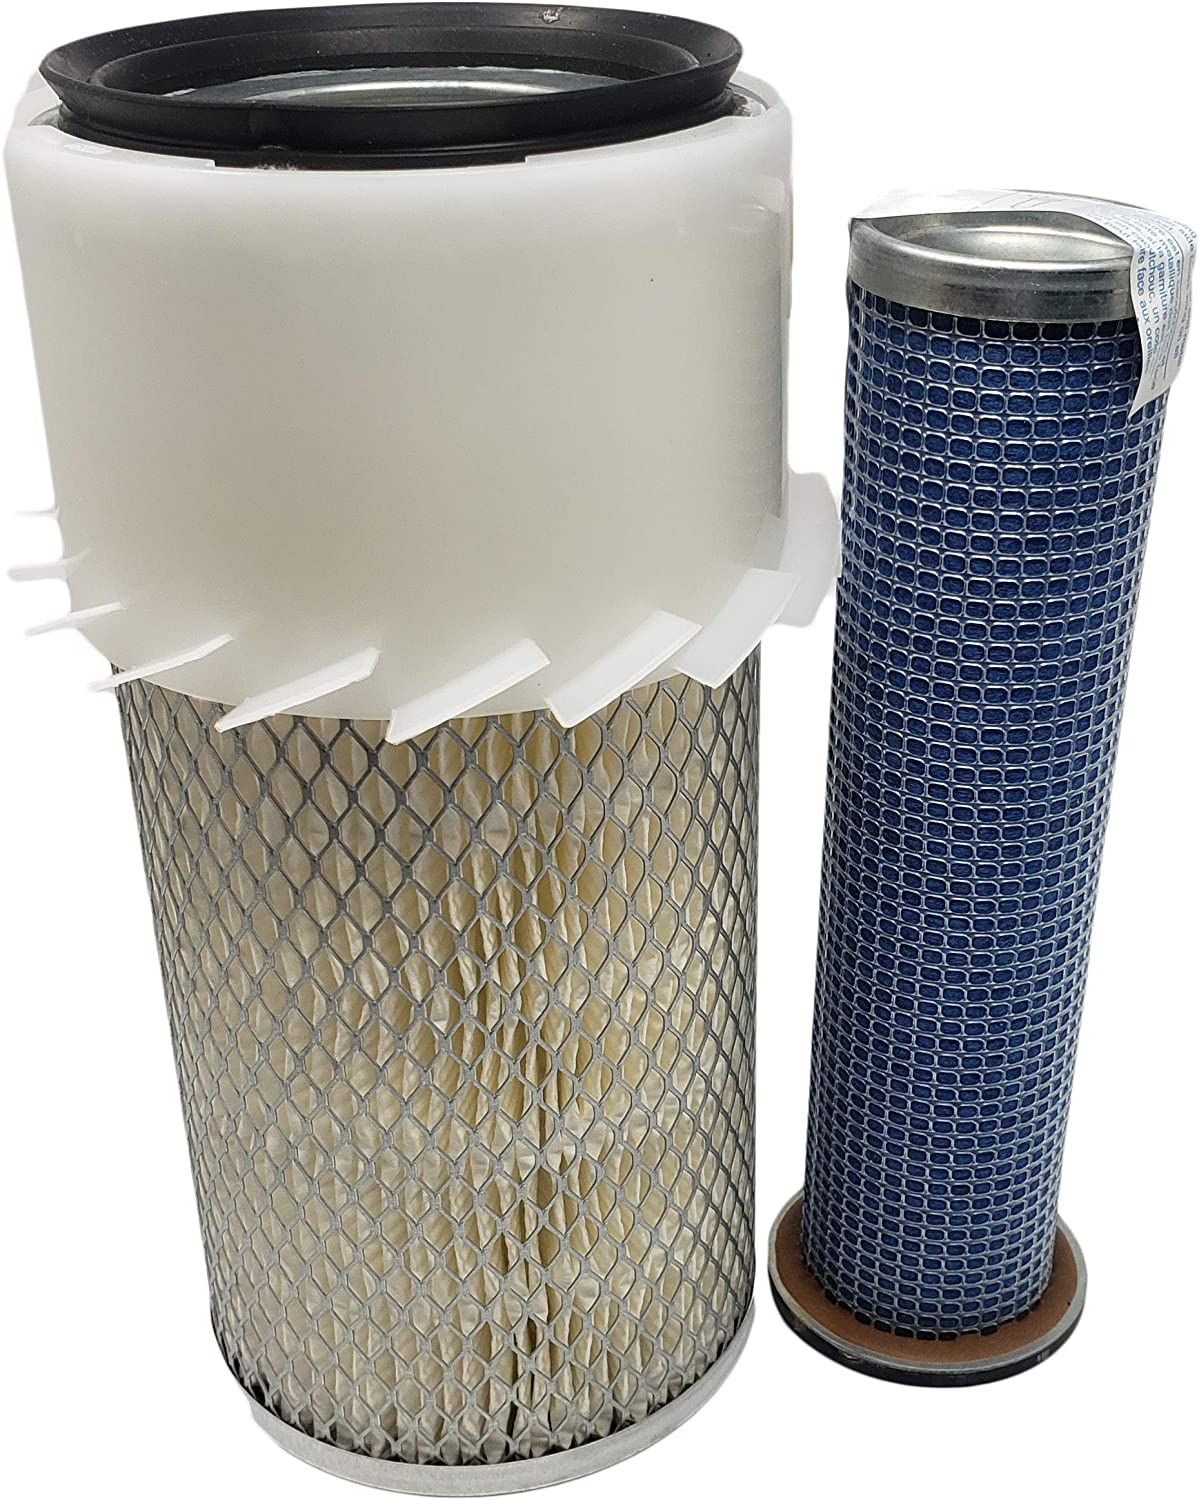 Air Filter Seasonal Wrap Introduction Set For Bobcat Donaldson 6598492-6598362 Ranking integrated 1st place